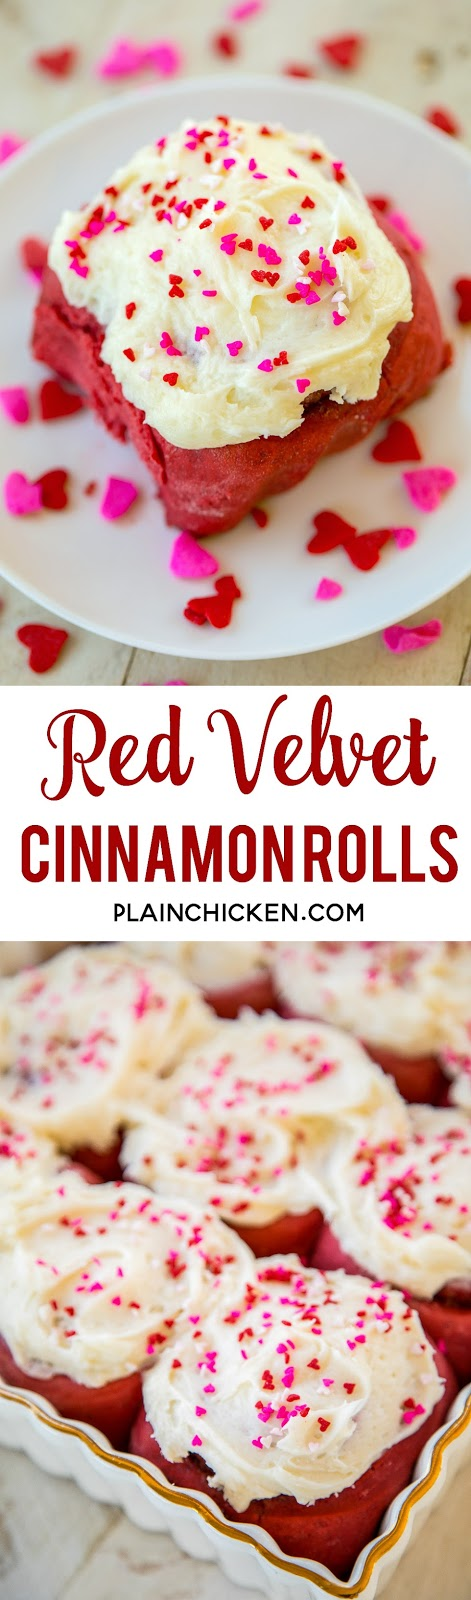 Red Velvet Cinnamon Rolls - TO-DIE-FOR delicious!!! SO easy! Start with a box of cake mix and add flour, water, and yeast. Bake and top with an amazing homemade cream cheese frosting! Makes 24 rolls. One pan for you and one for your Valentine! #redvelvet #valentinesday #cinnamonrolls